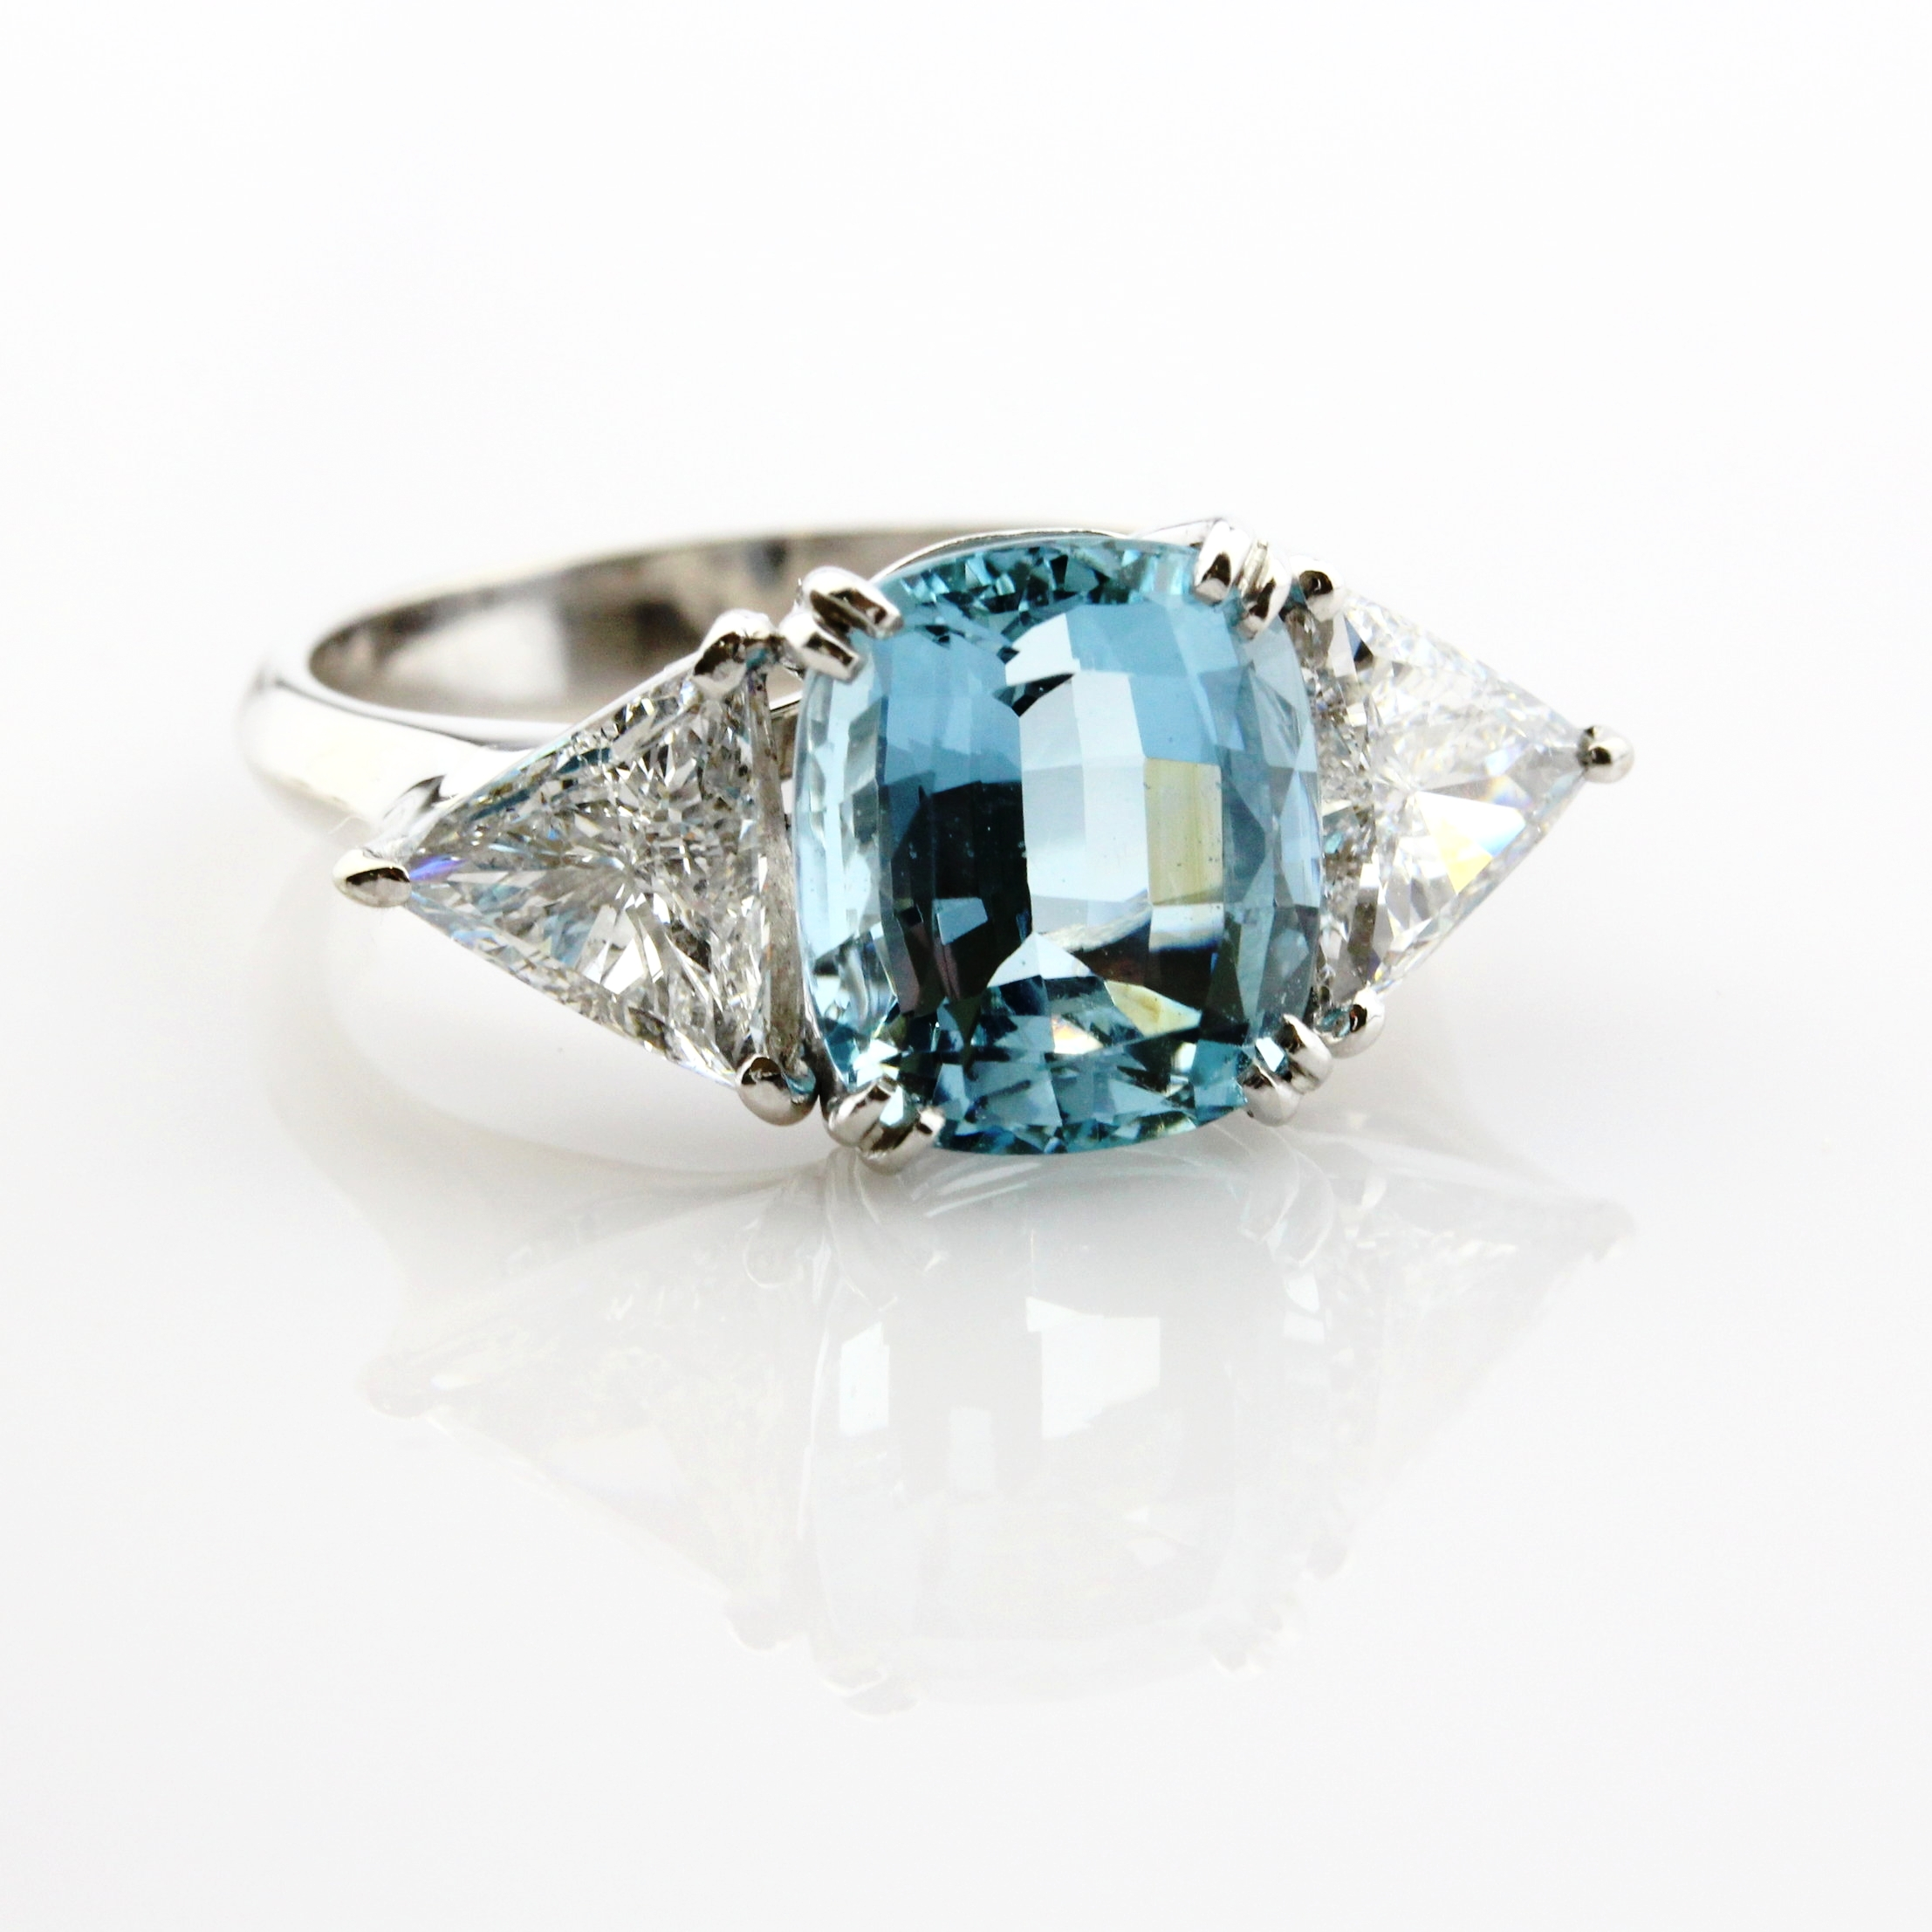 White gold ring with double-claw set cushion cut aquamarine with trillion cut diamonds.